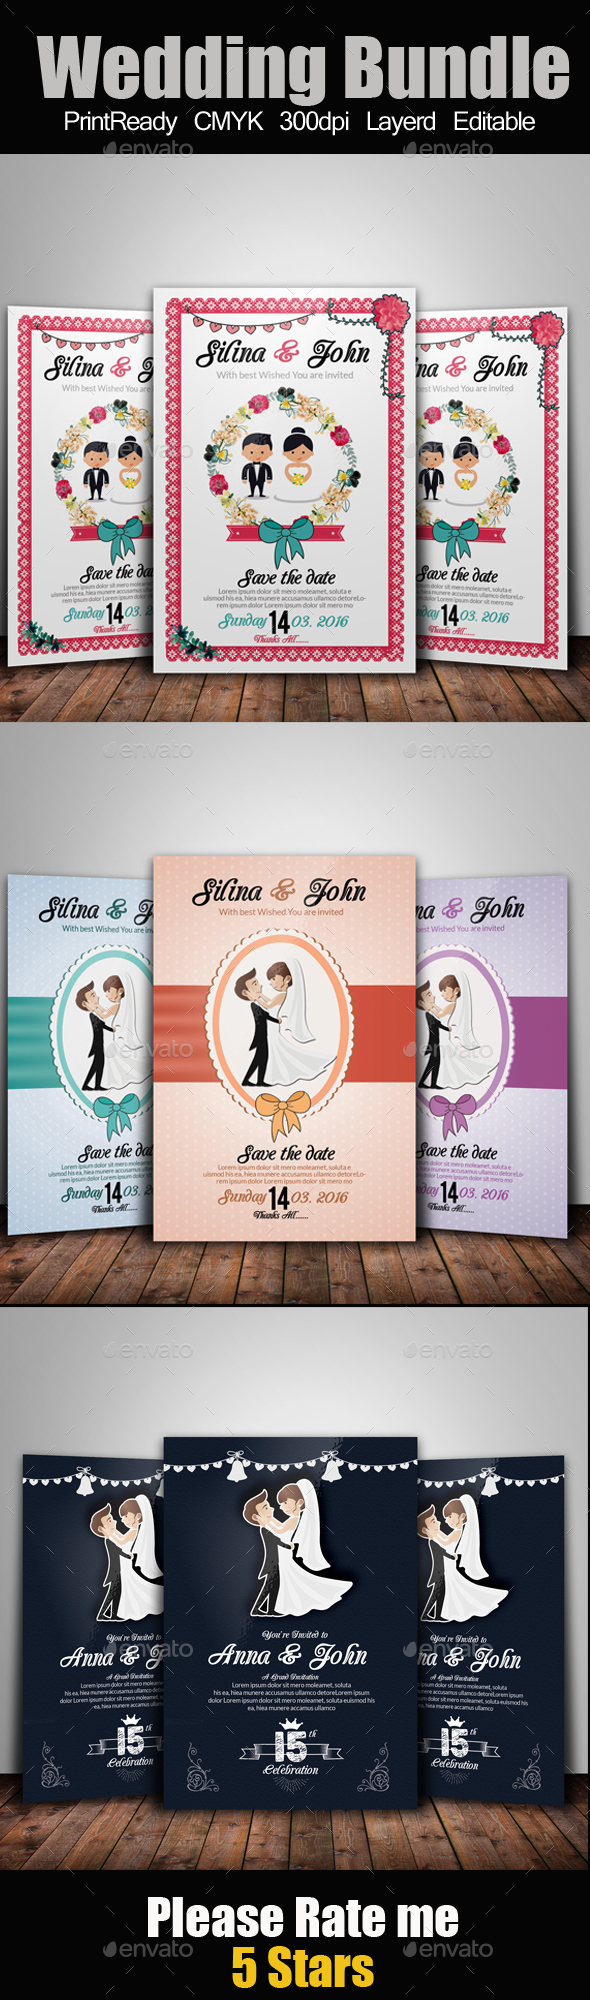 Wedding Flyer Template Bundle - Weddings Cards & Invites